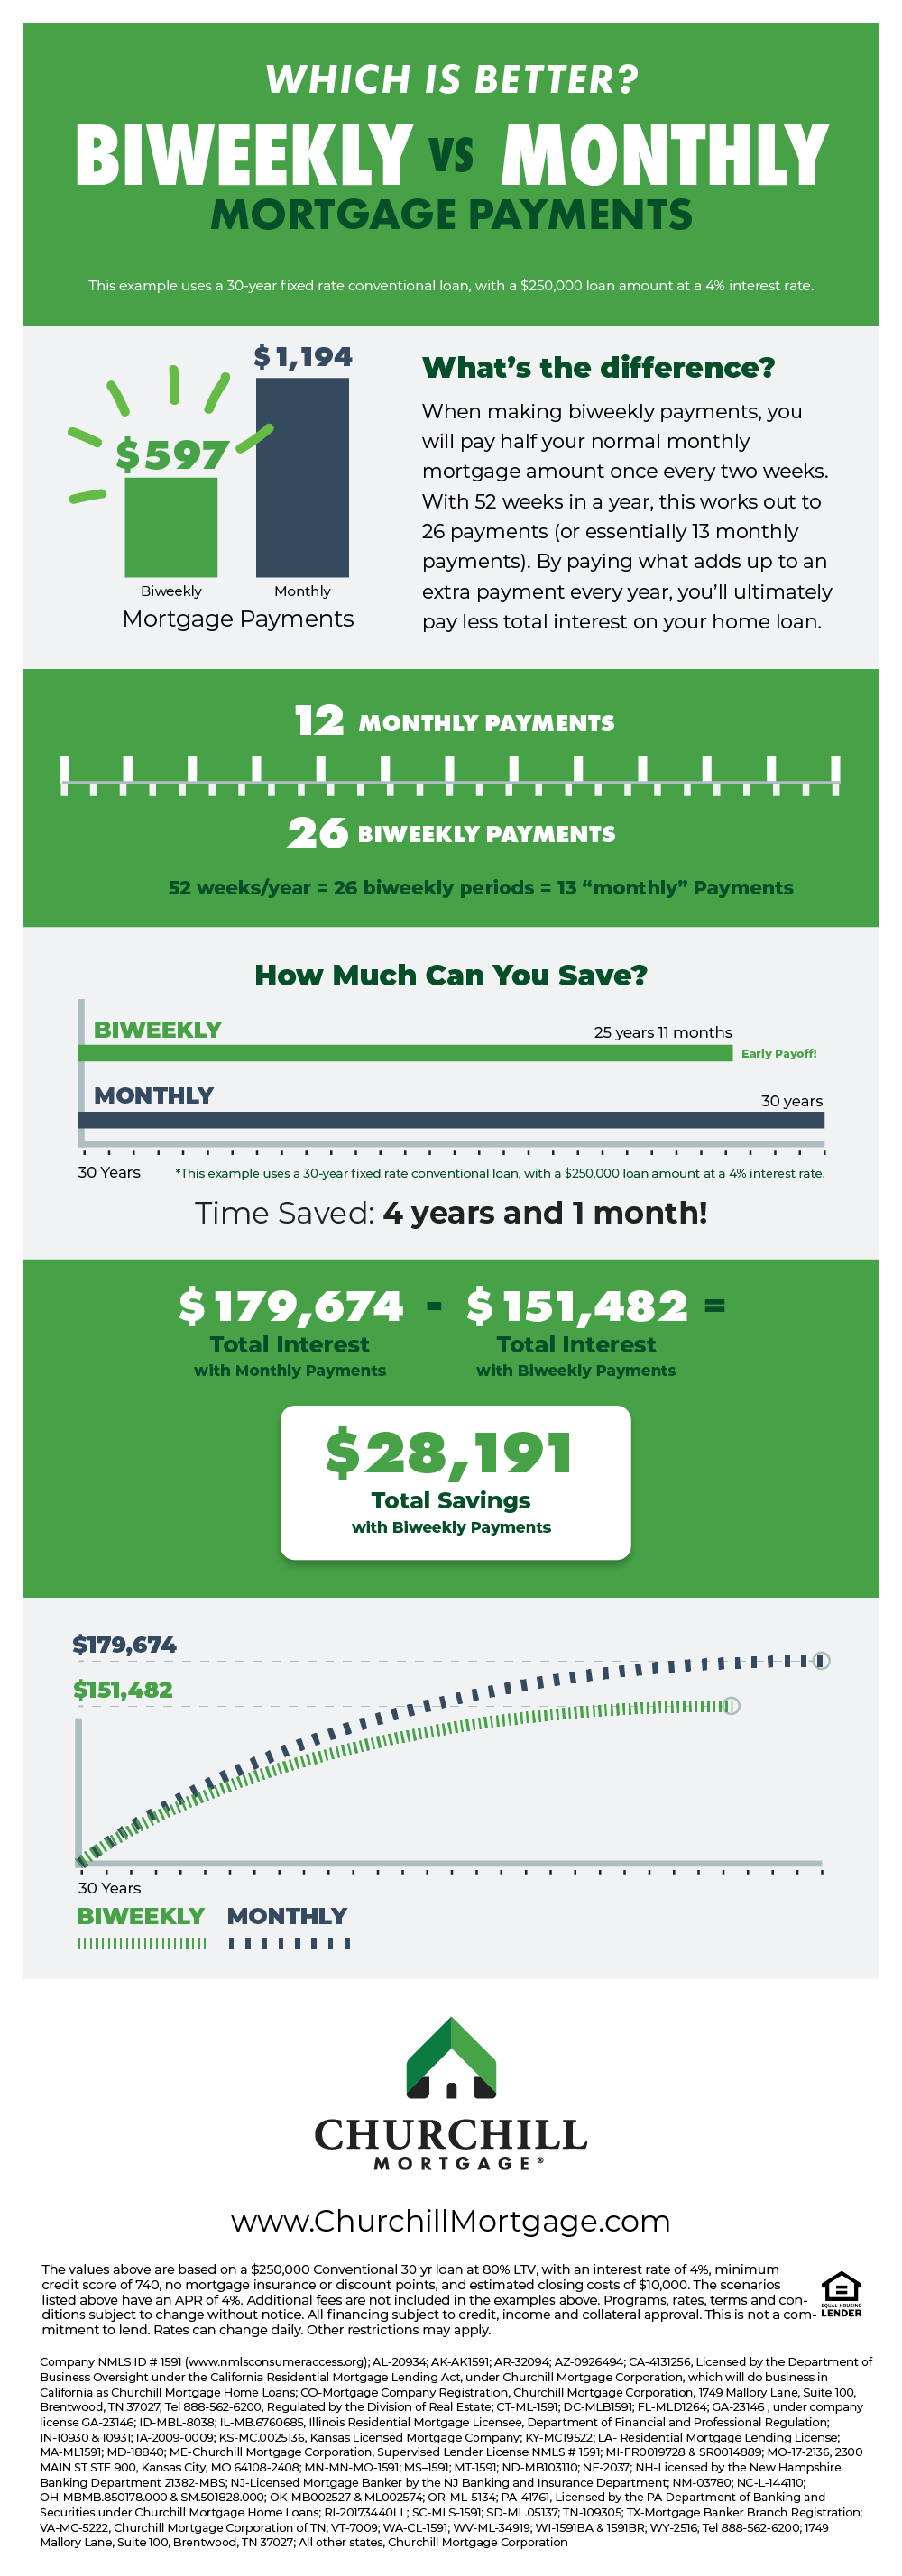 Biweekly-Payments-Infographic---Churchill-Mortgage-1